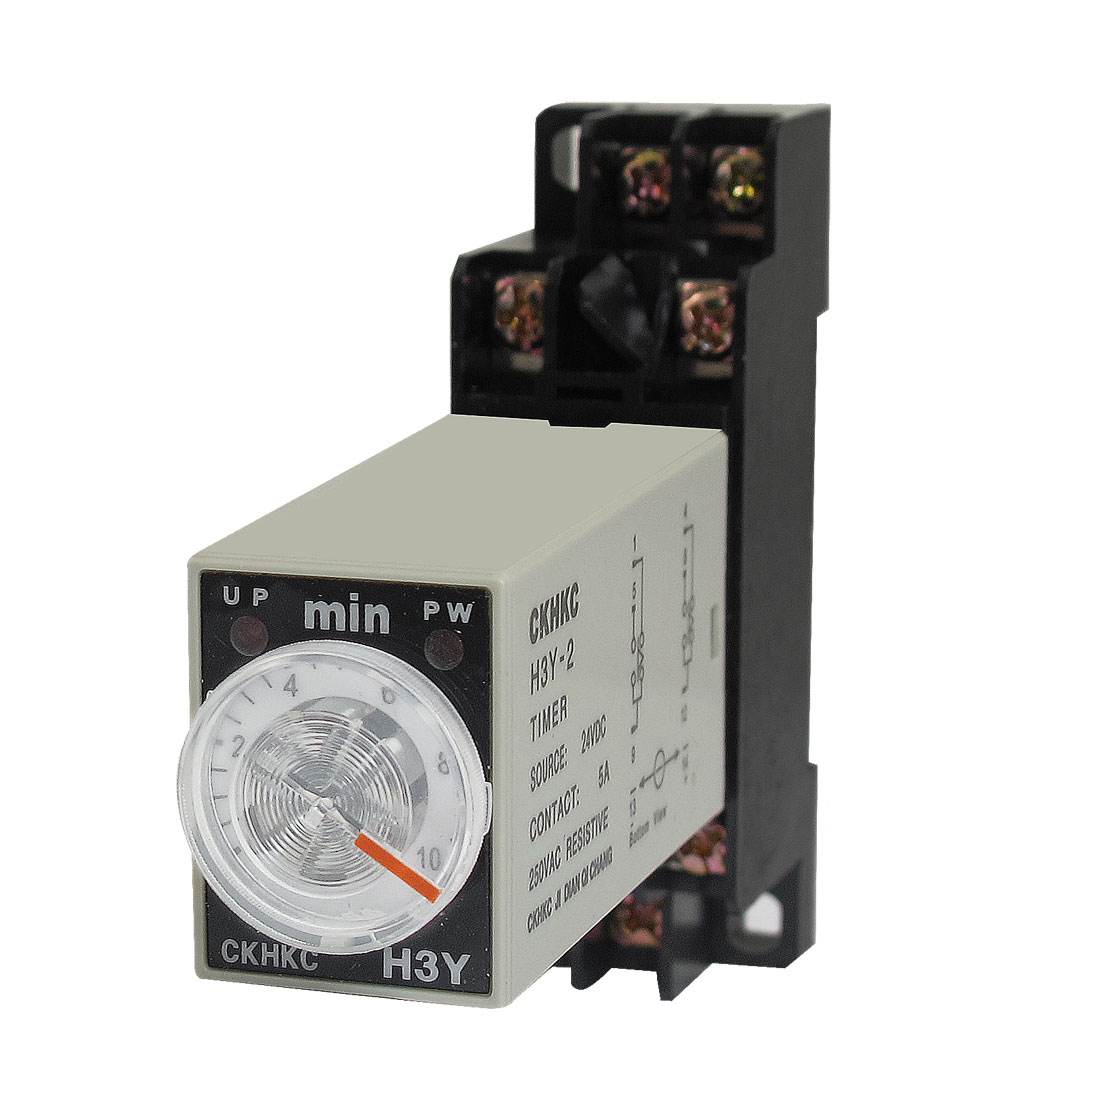 DC 24V H3Y-2 0-10 Minutes 10Min DPDT 8 Pins Power on Time Delay Relay w Socket